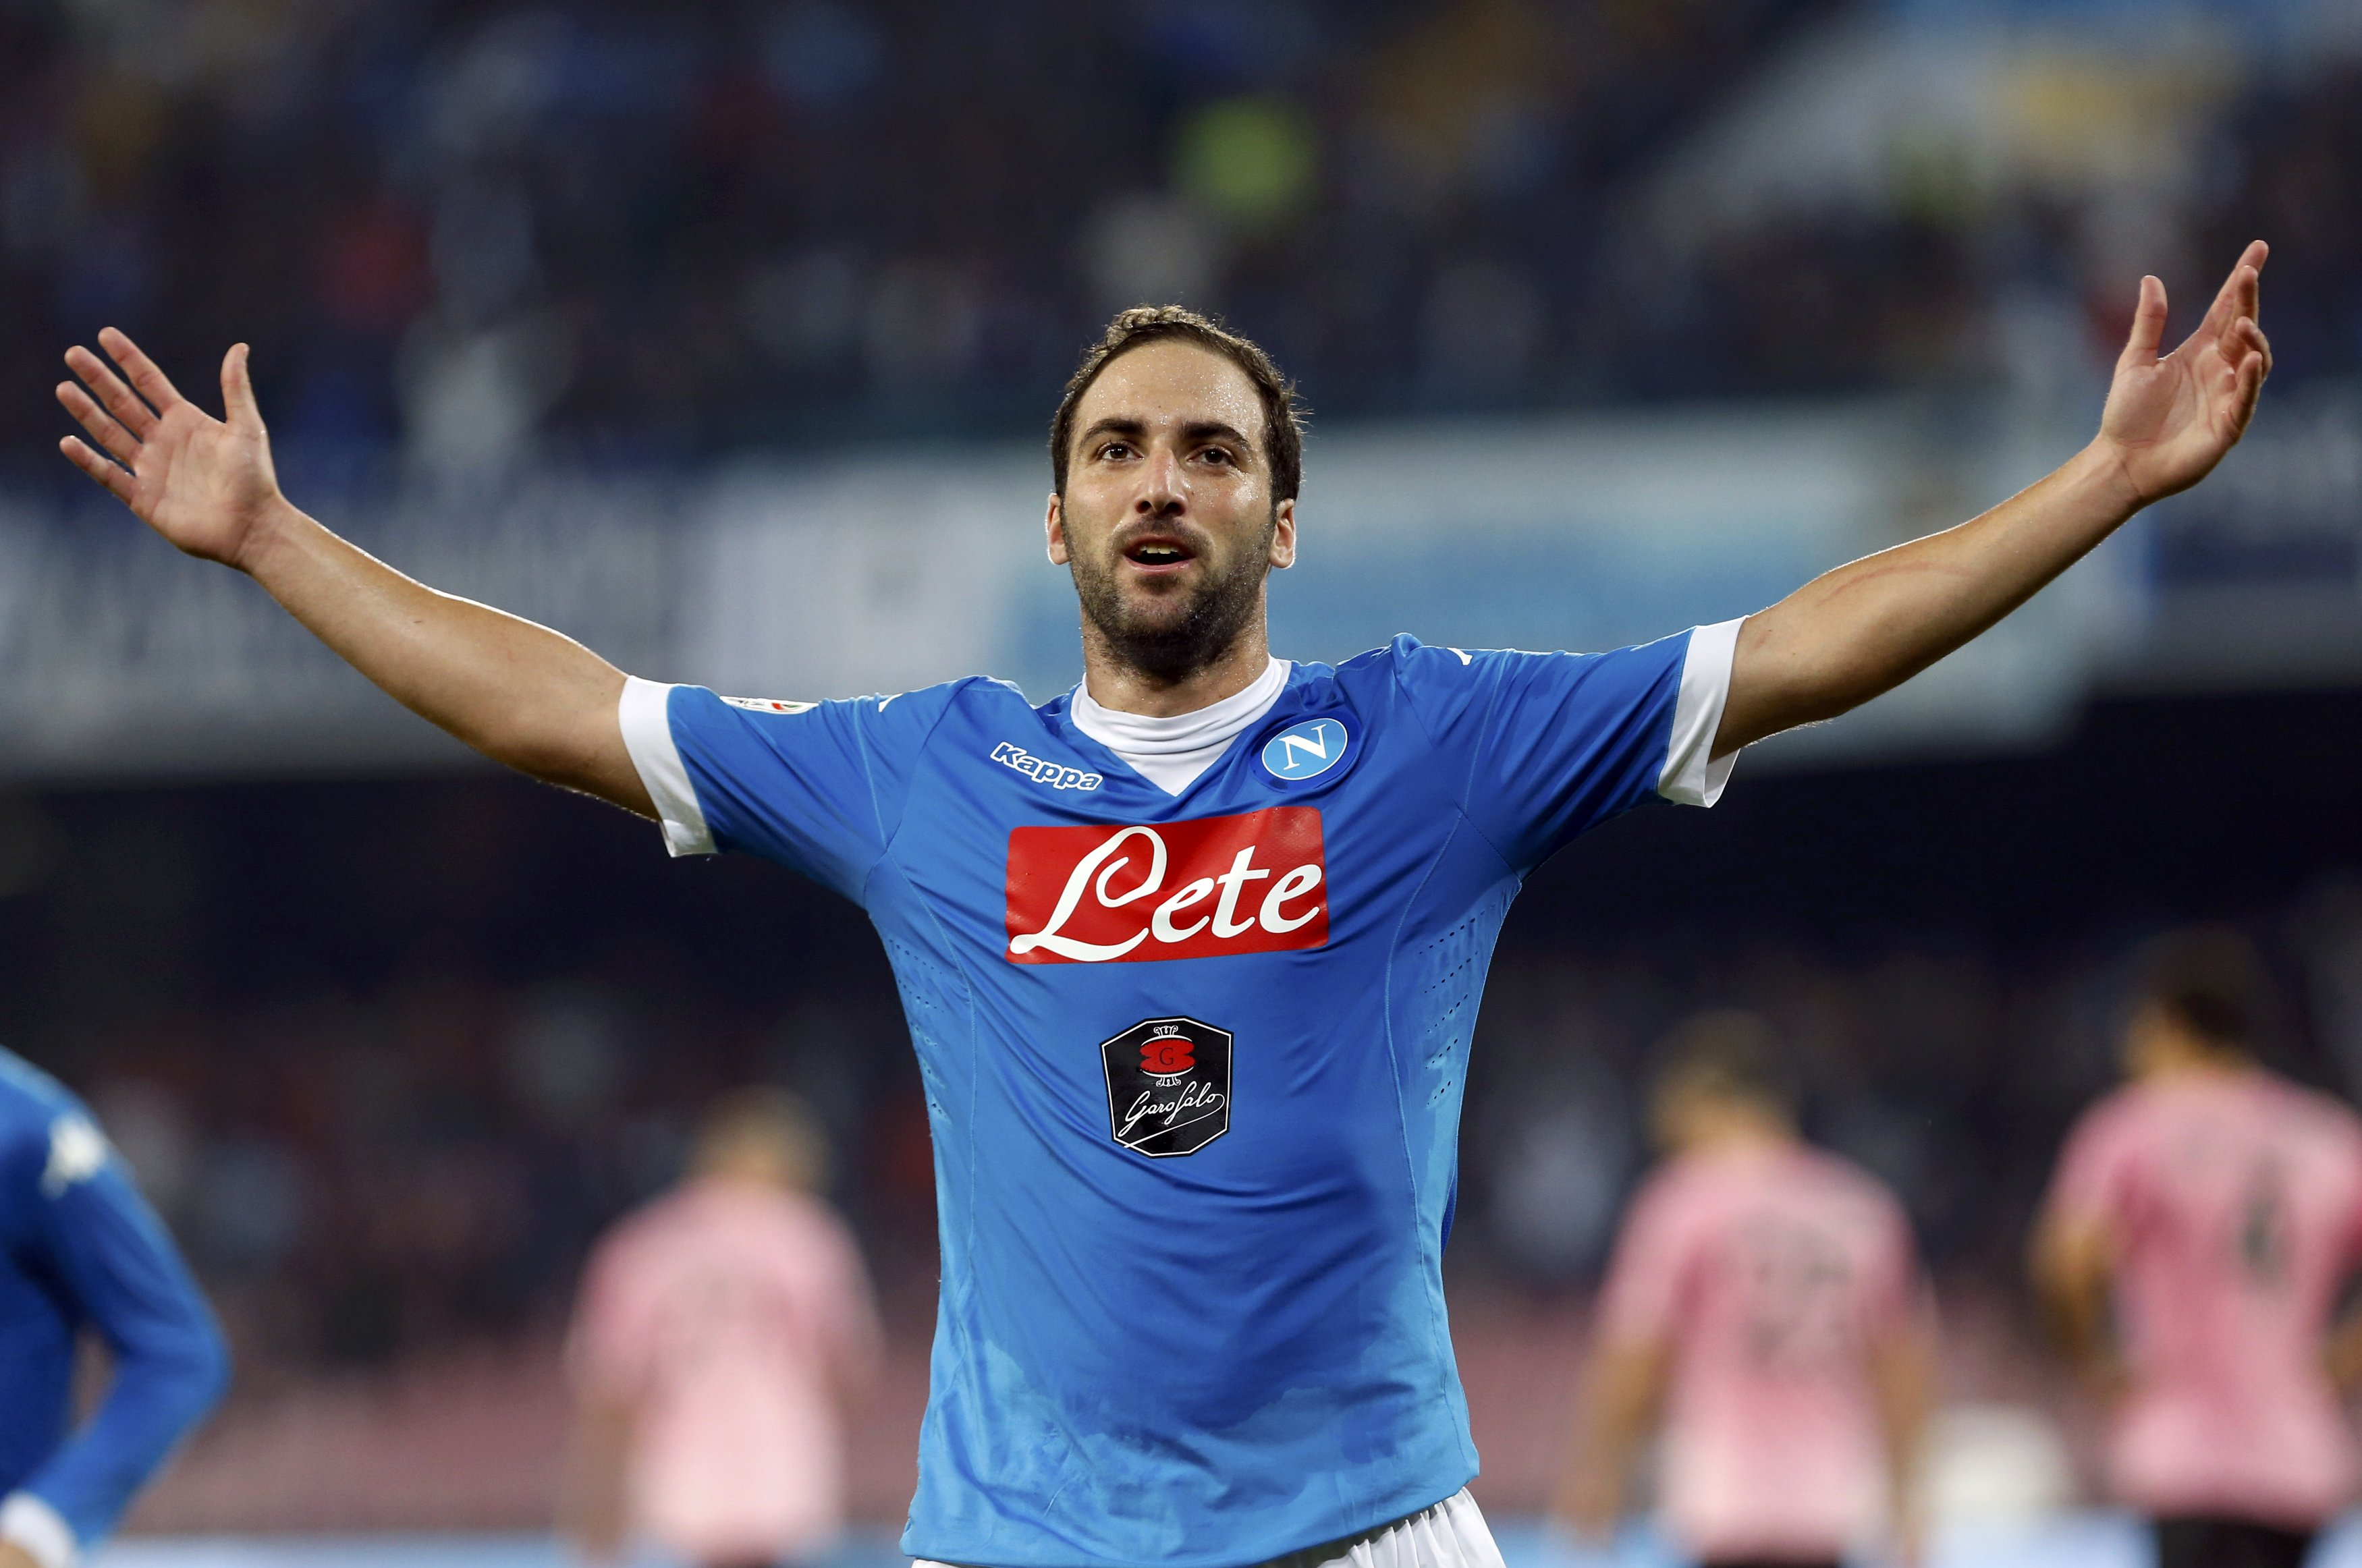 Napoli's Higuain celebrates after scoring against Palermo's during their Serie A soccer match at San Paolo stadium in Napoli